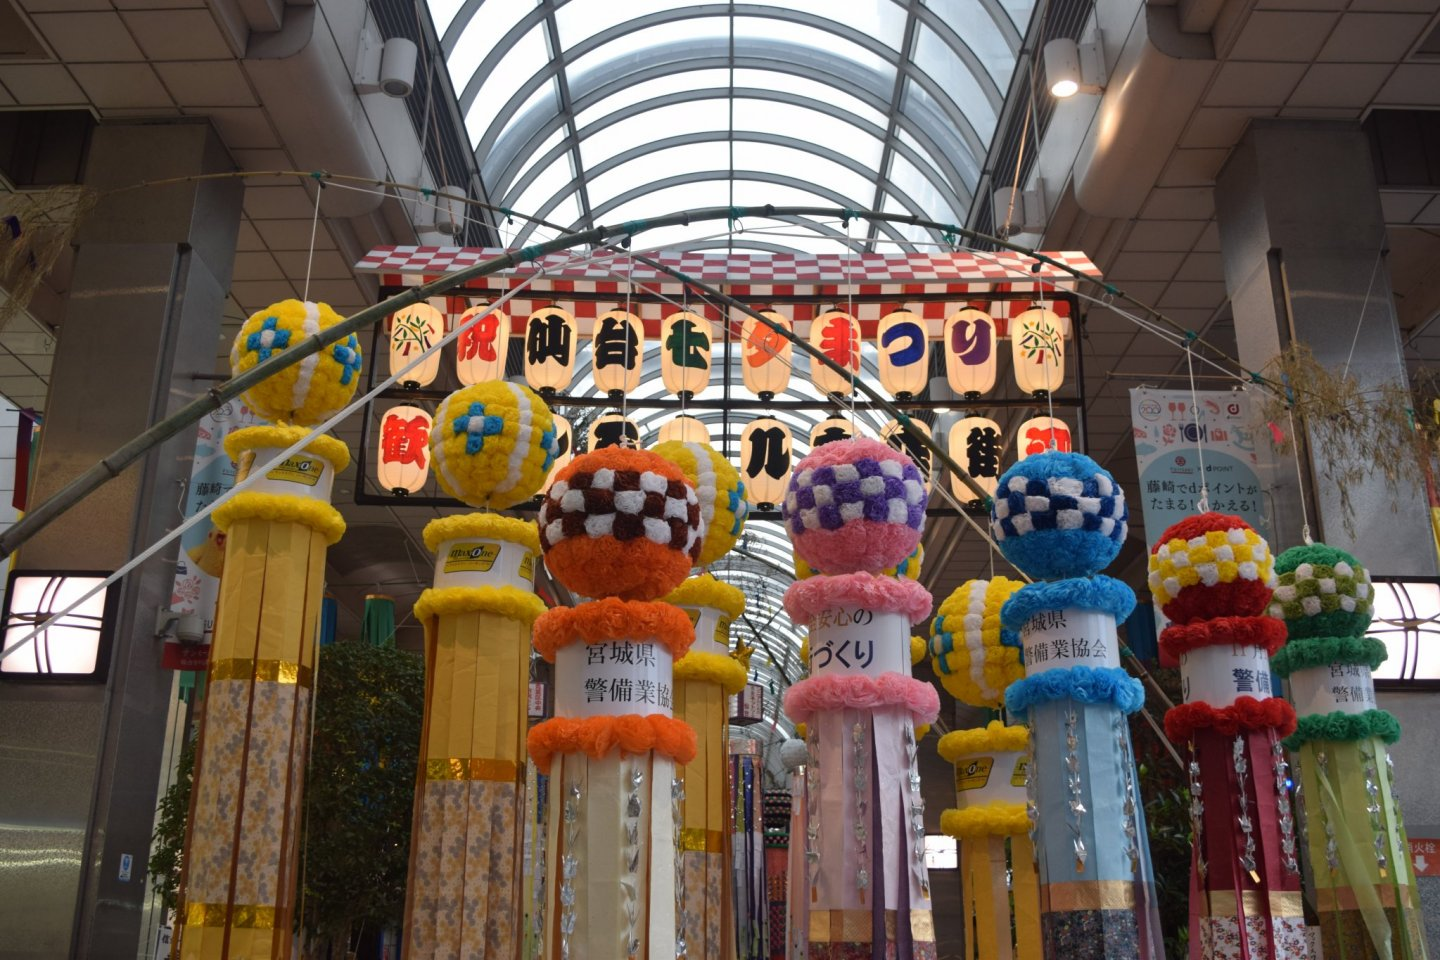 The entrance to one of the Tanabata Matsuri event areas